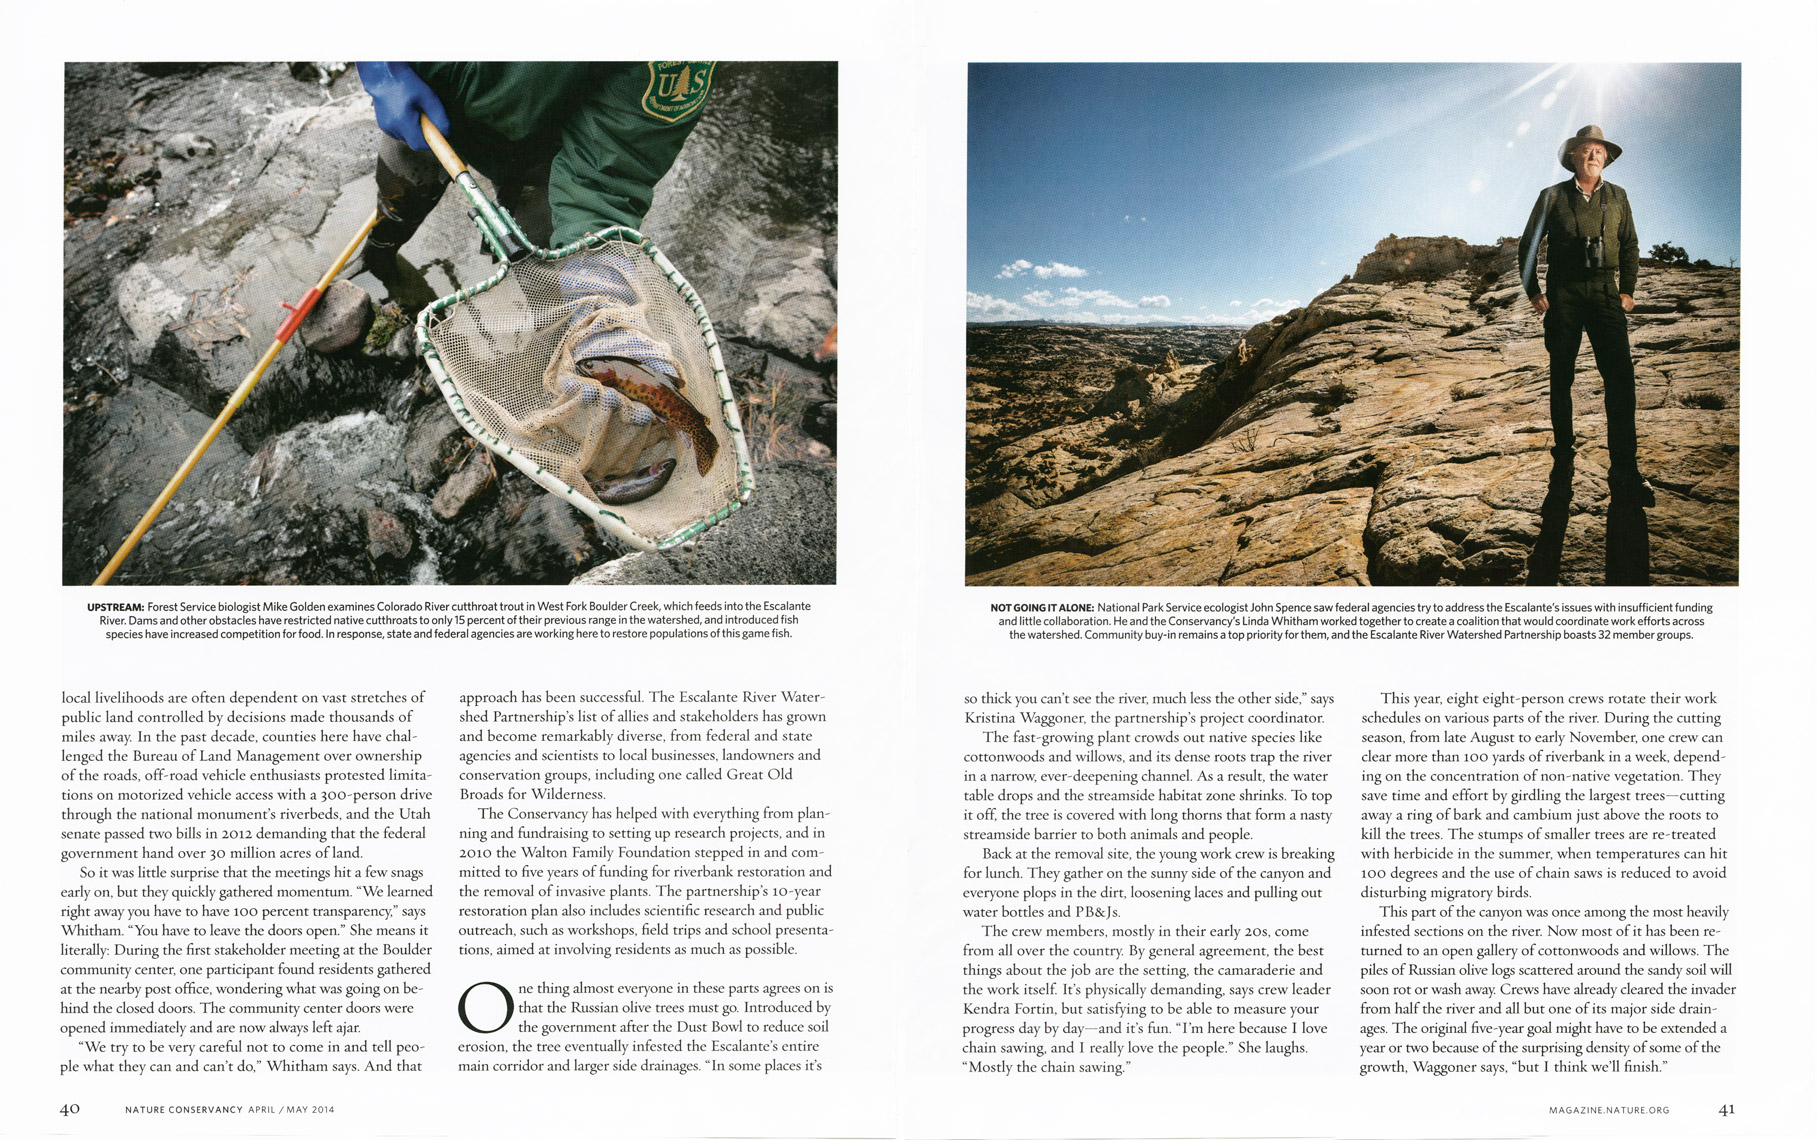 Nature Conservancy Magazine - Cutting A Clear Path Feature - Spread 5 - April/May 2014